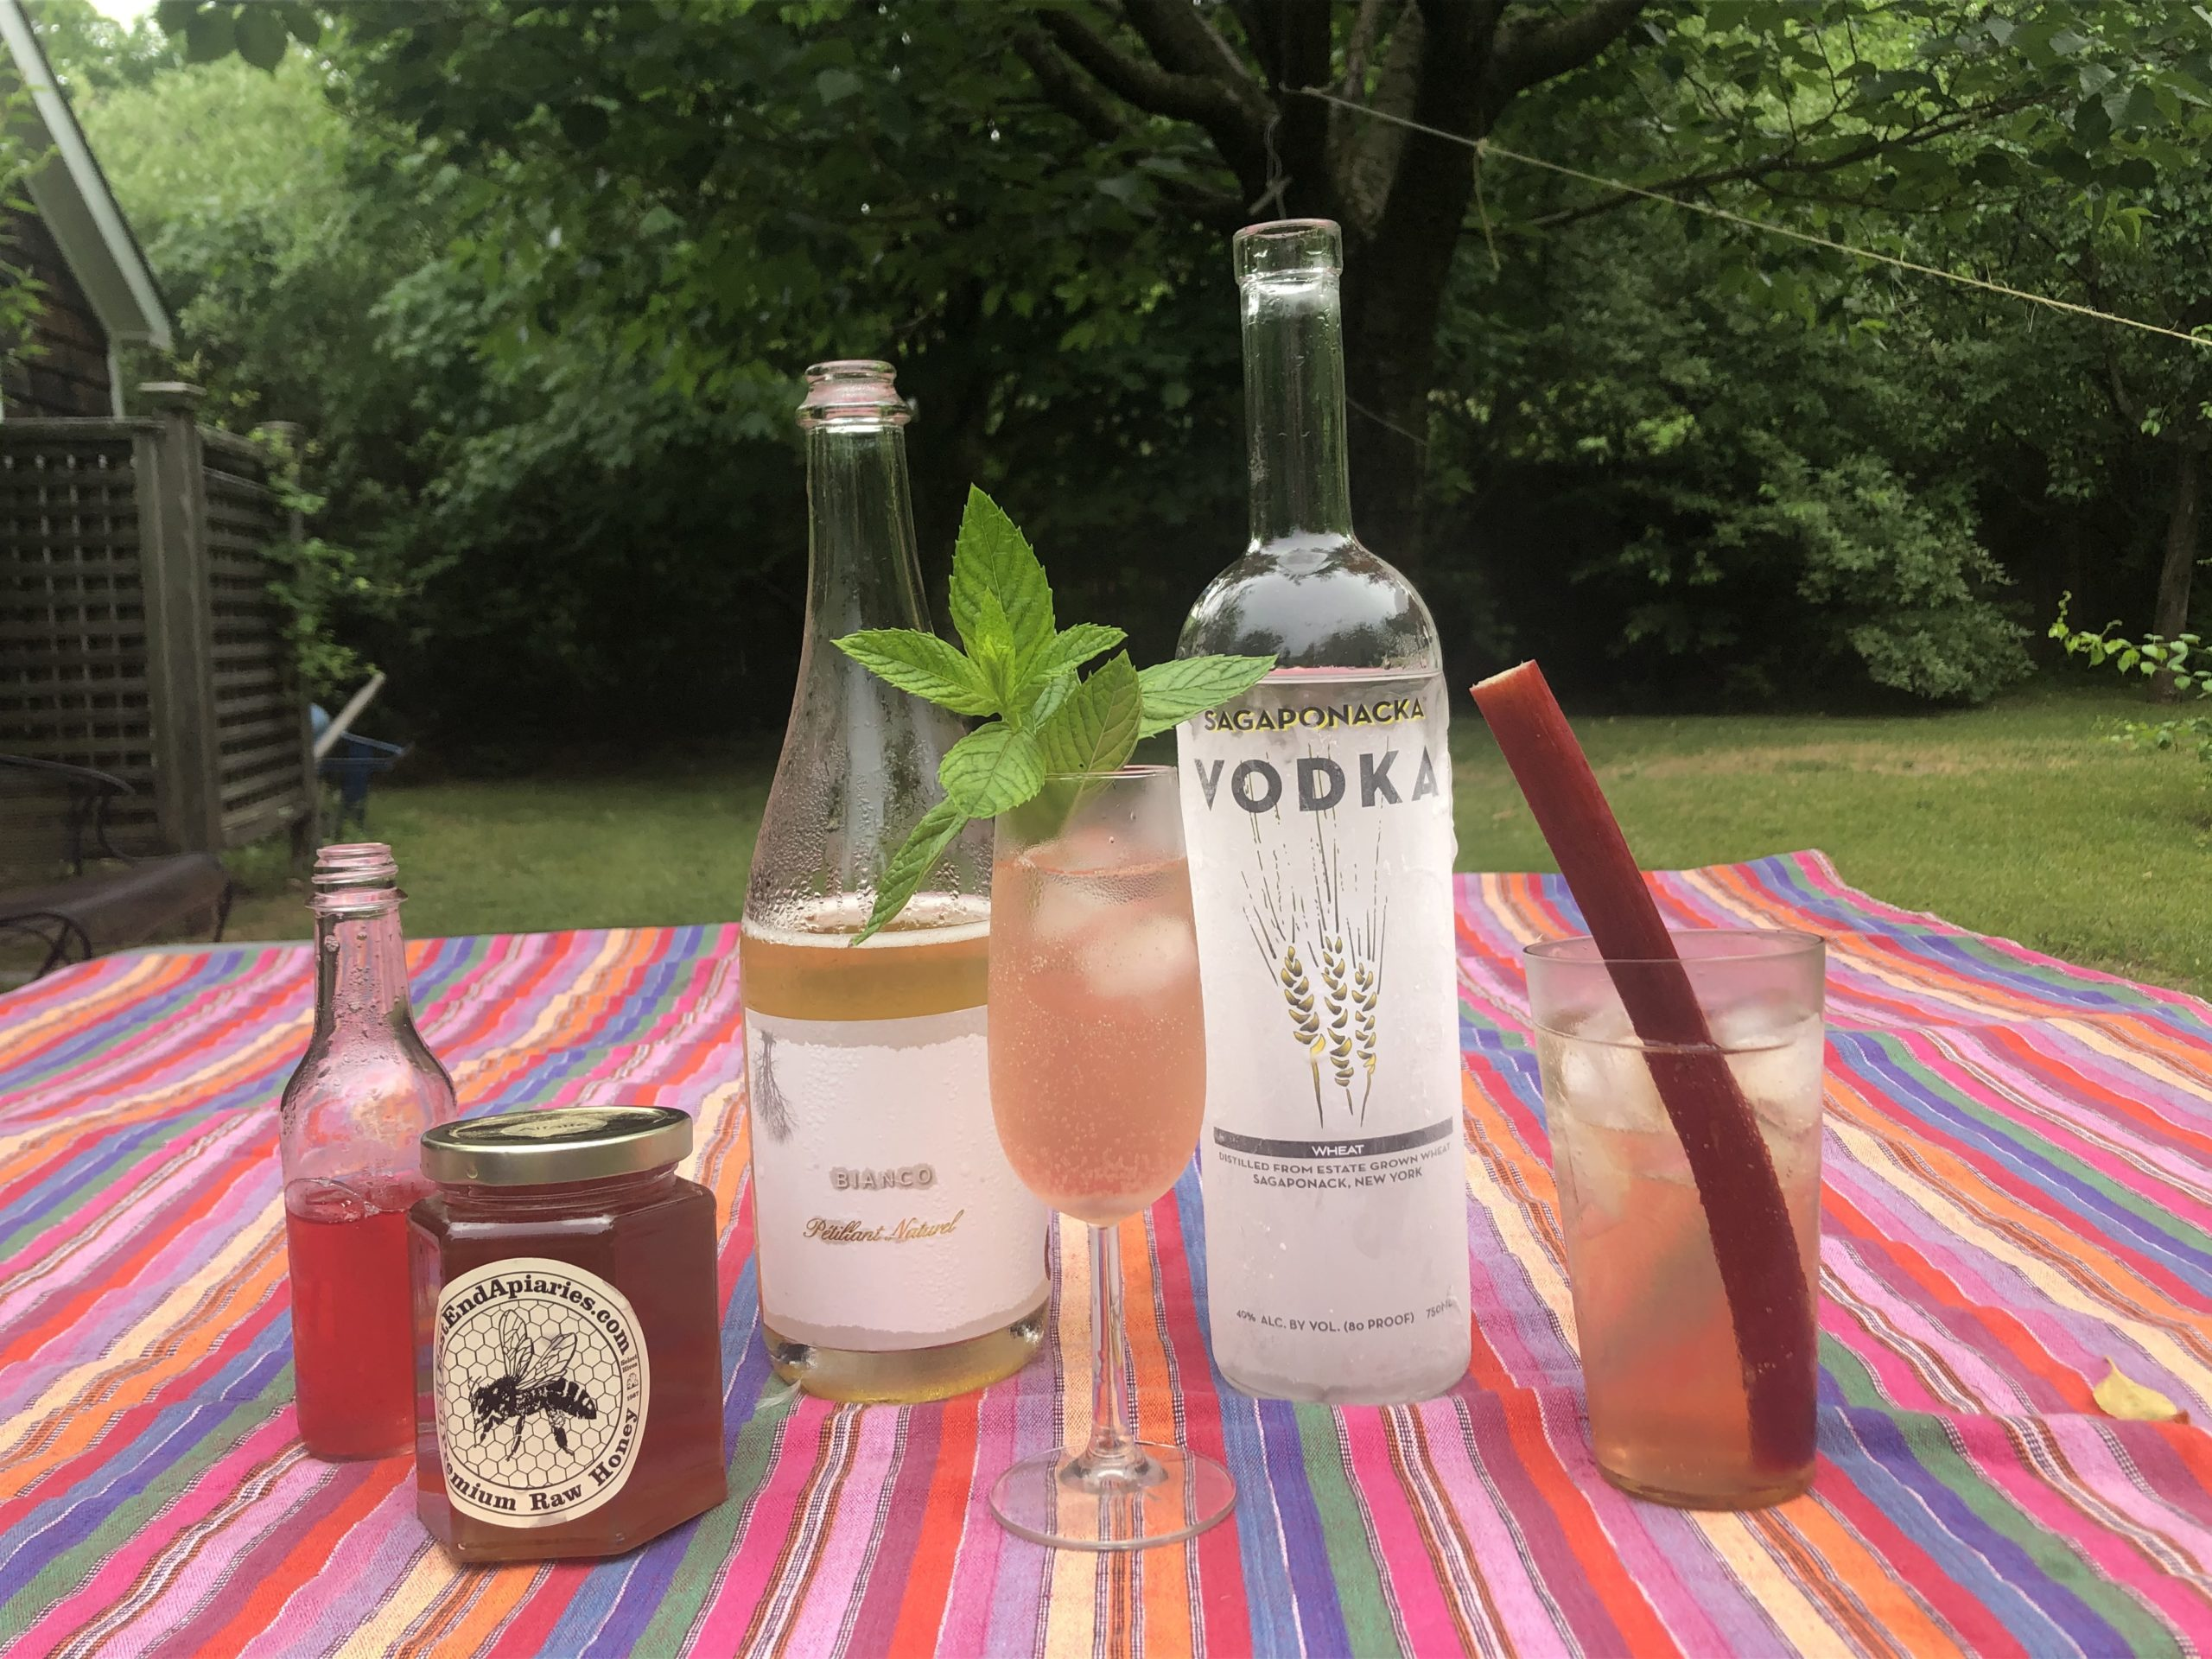 Create your own rhubarb cocktail with all local ingredients: Sag Harbor honey, rhubarb, wheat vodka and rhubarb liquor from the Sagaponack Farm Distillery.